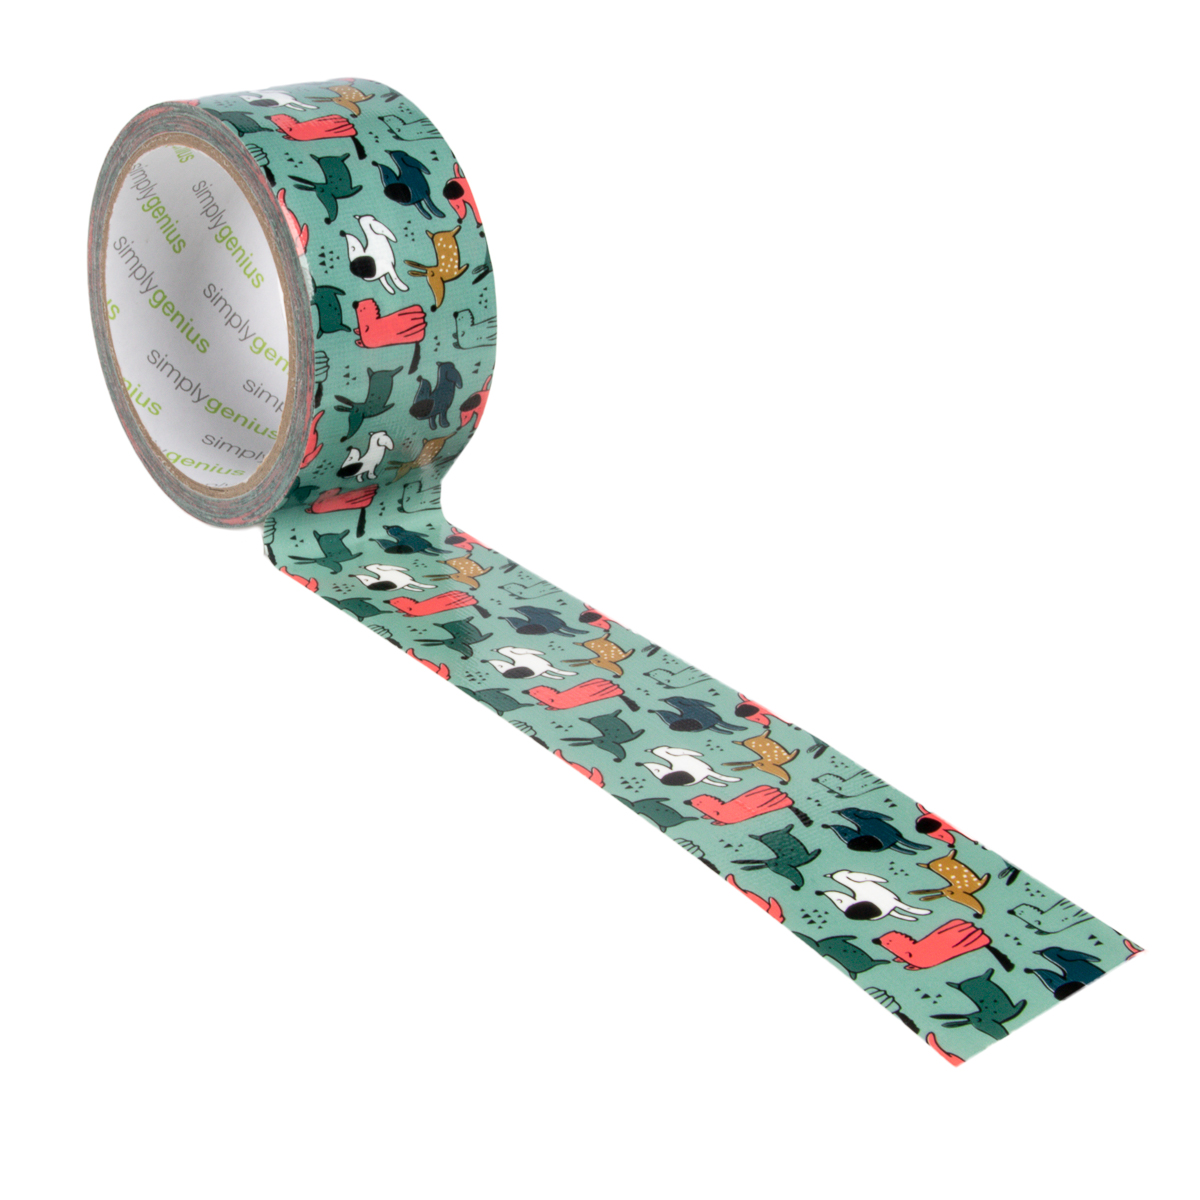 Simply-Genius-Duct-Tape-Roll-Colors-Patterns-Craft-Supplies-Colored-amp-Patterned thumbnail 49